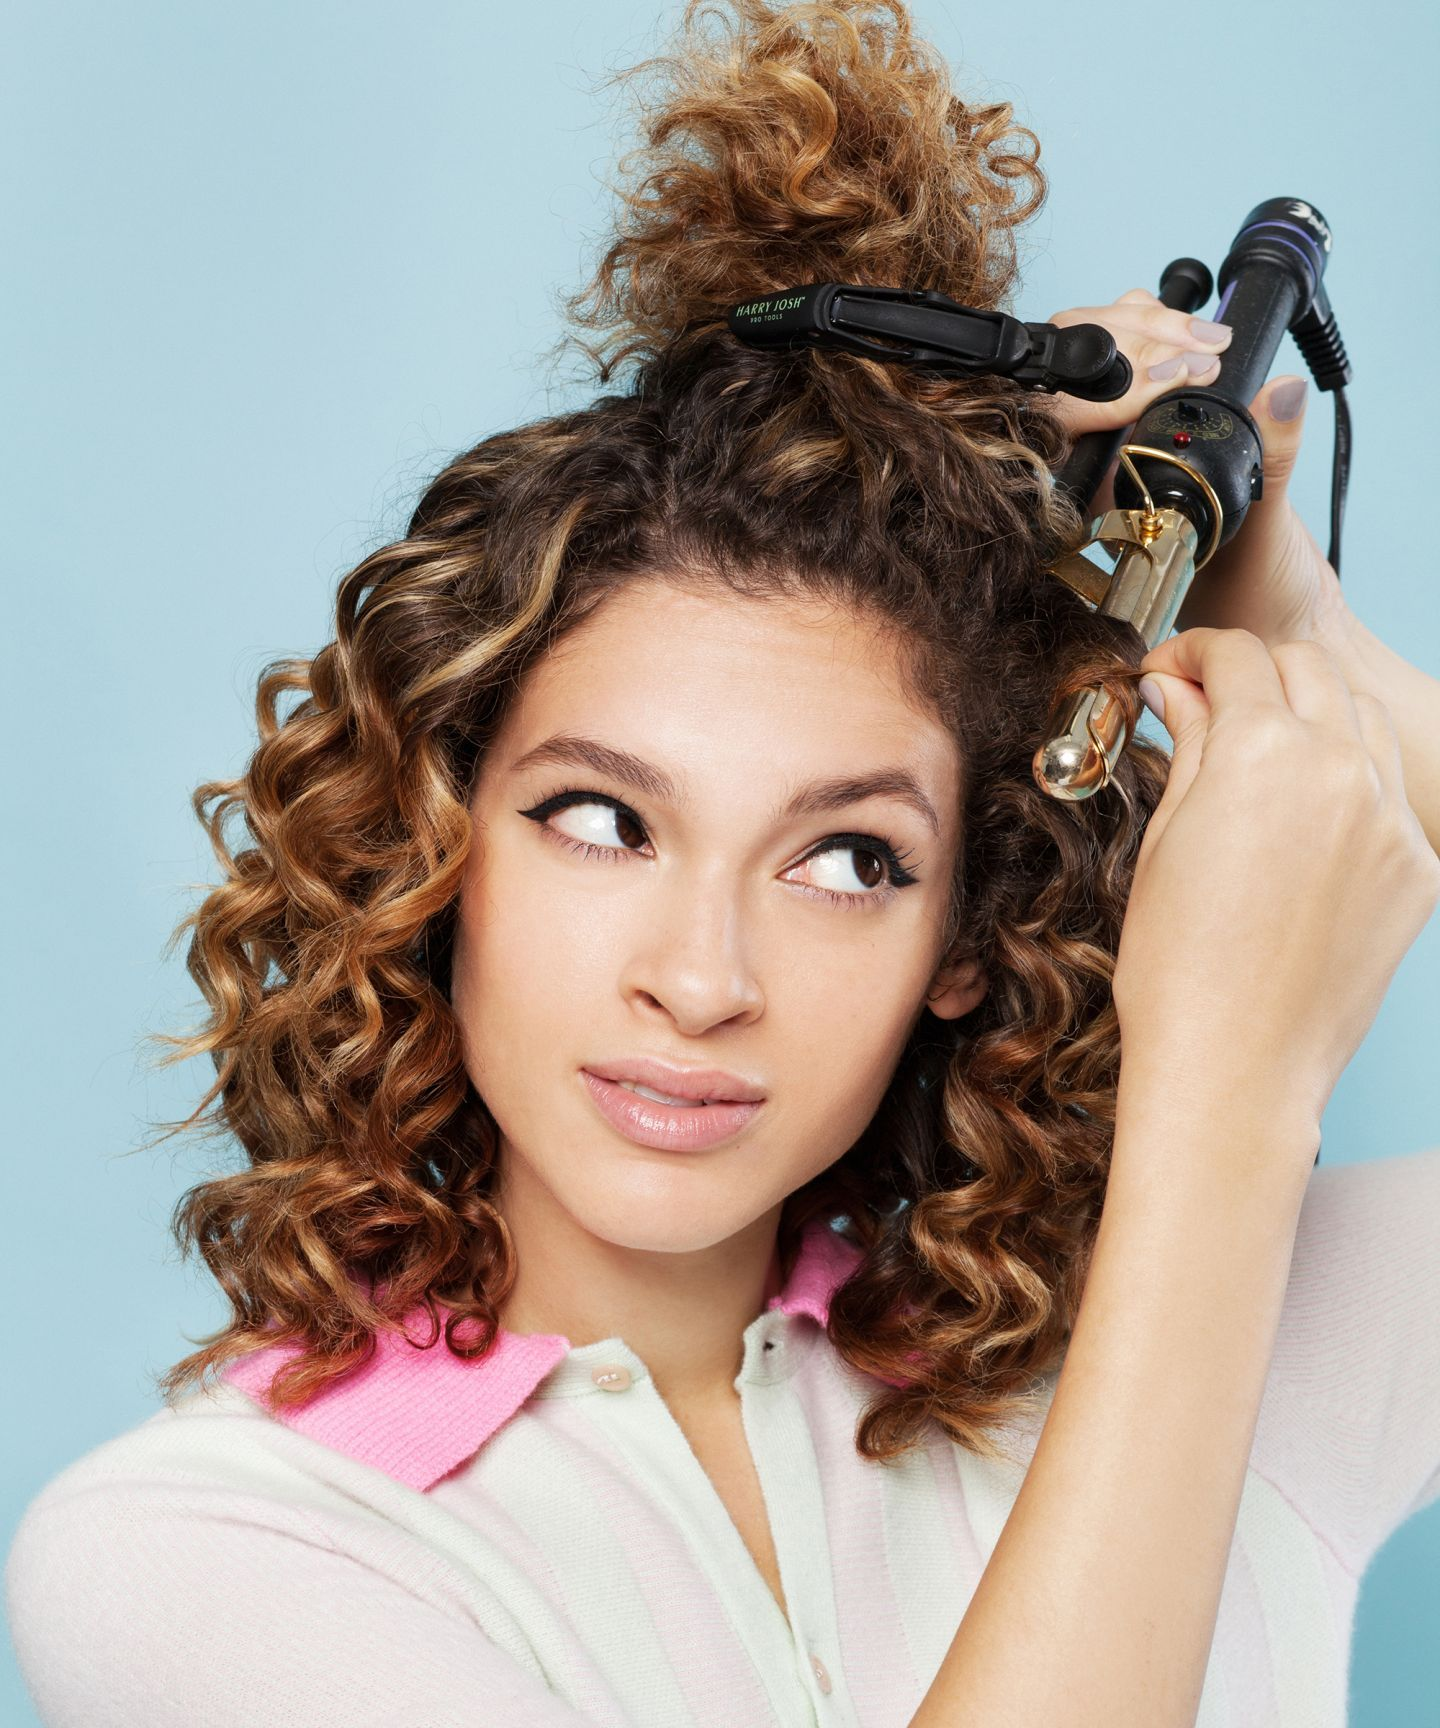 3 Chic & Easy Styles For Girls With Curls